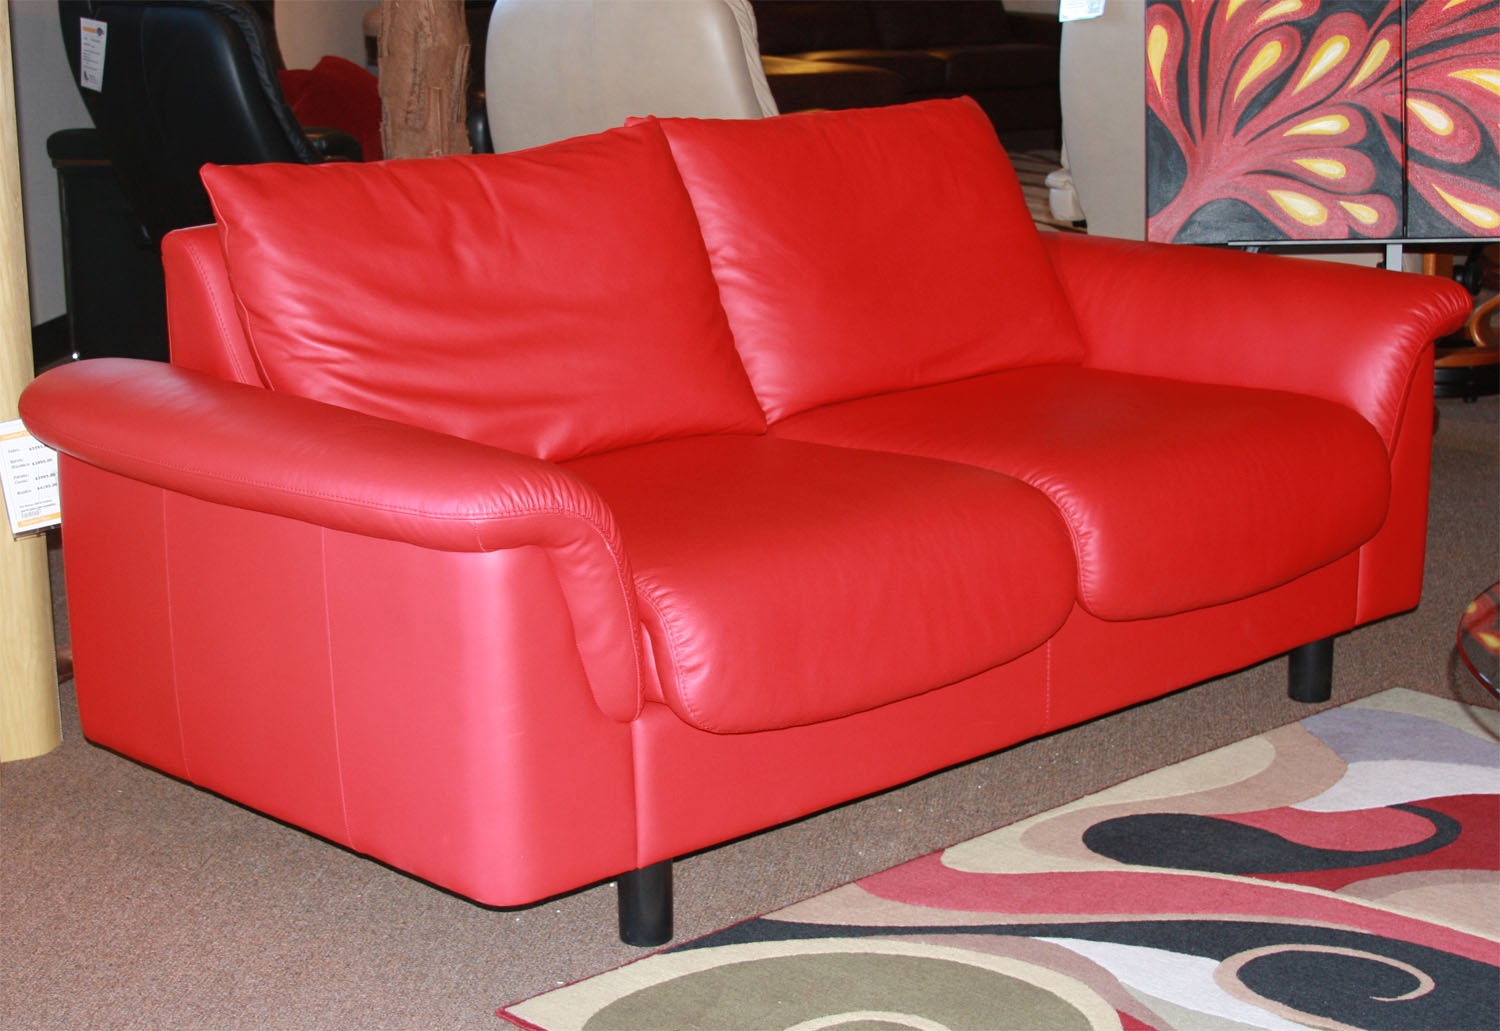 Stressless Paloma Chilli Red 09462 Leather Color Sofa from Ekornes